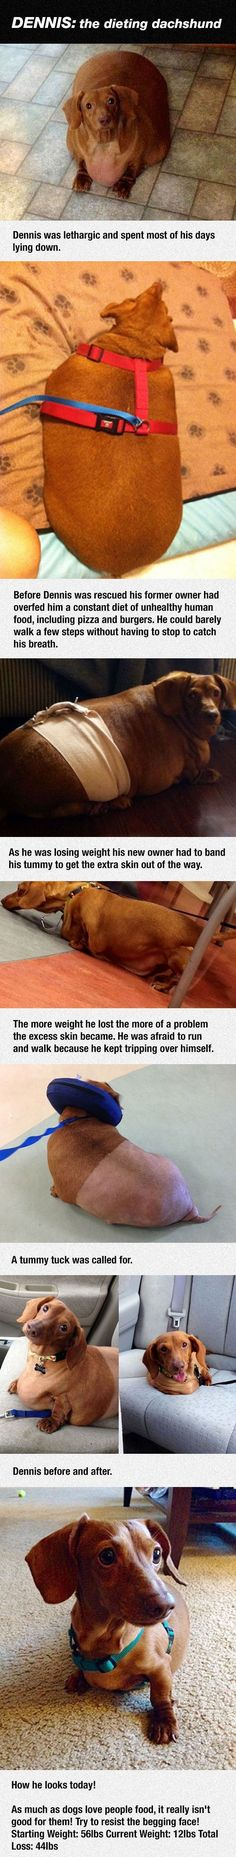 Meet Dennis The Dieting Dachshund cute animals dogs adorable dog story puppy animal pets stories dachshund